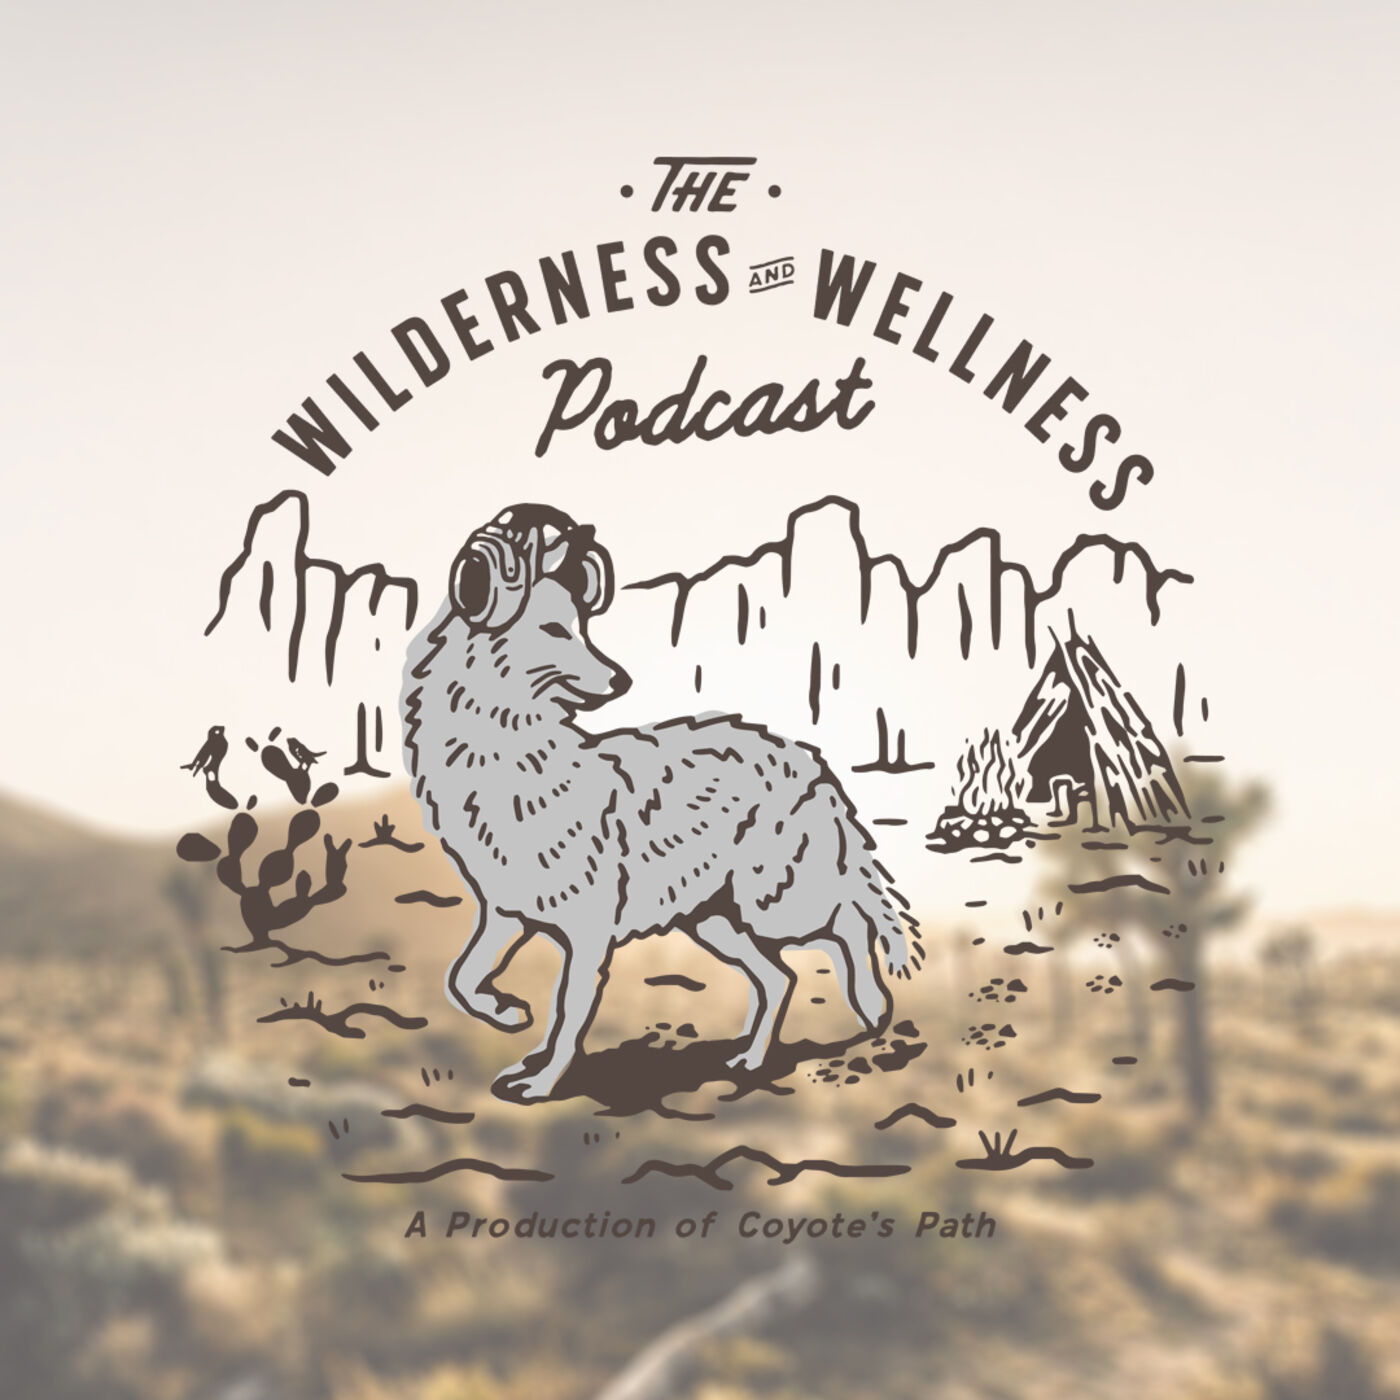 Ron Waline, Wilderness And Wellness Podcast   | JMB Podcast Episode 82